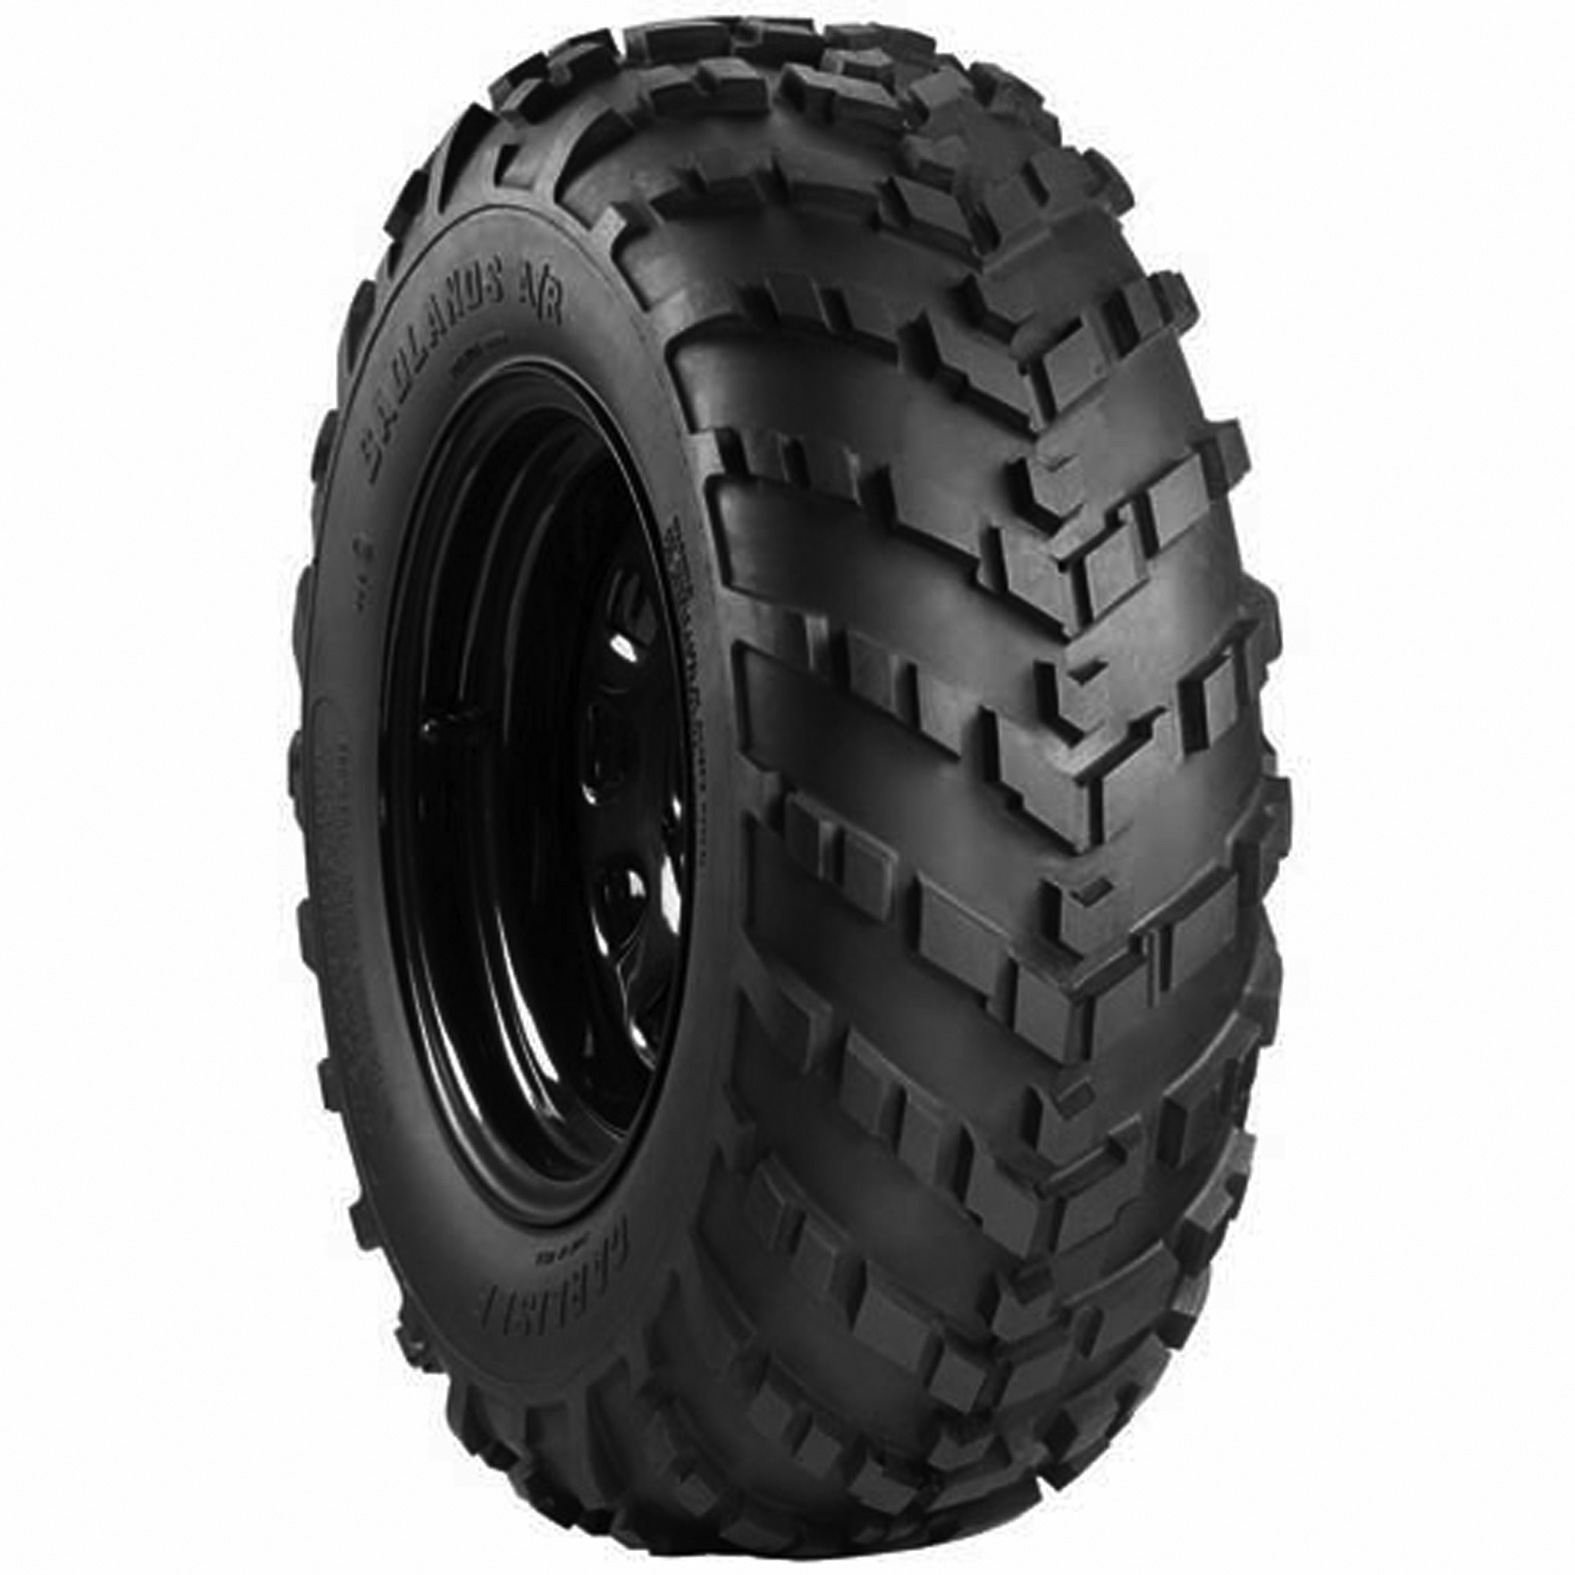 Carlisle Badlands A/R ATV Tire - Angle